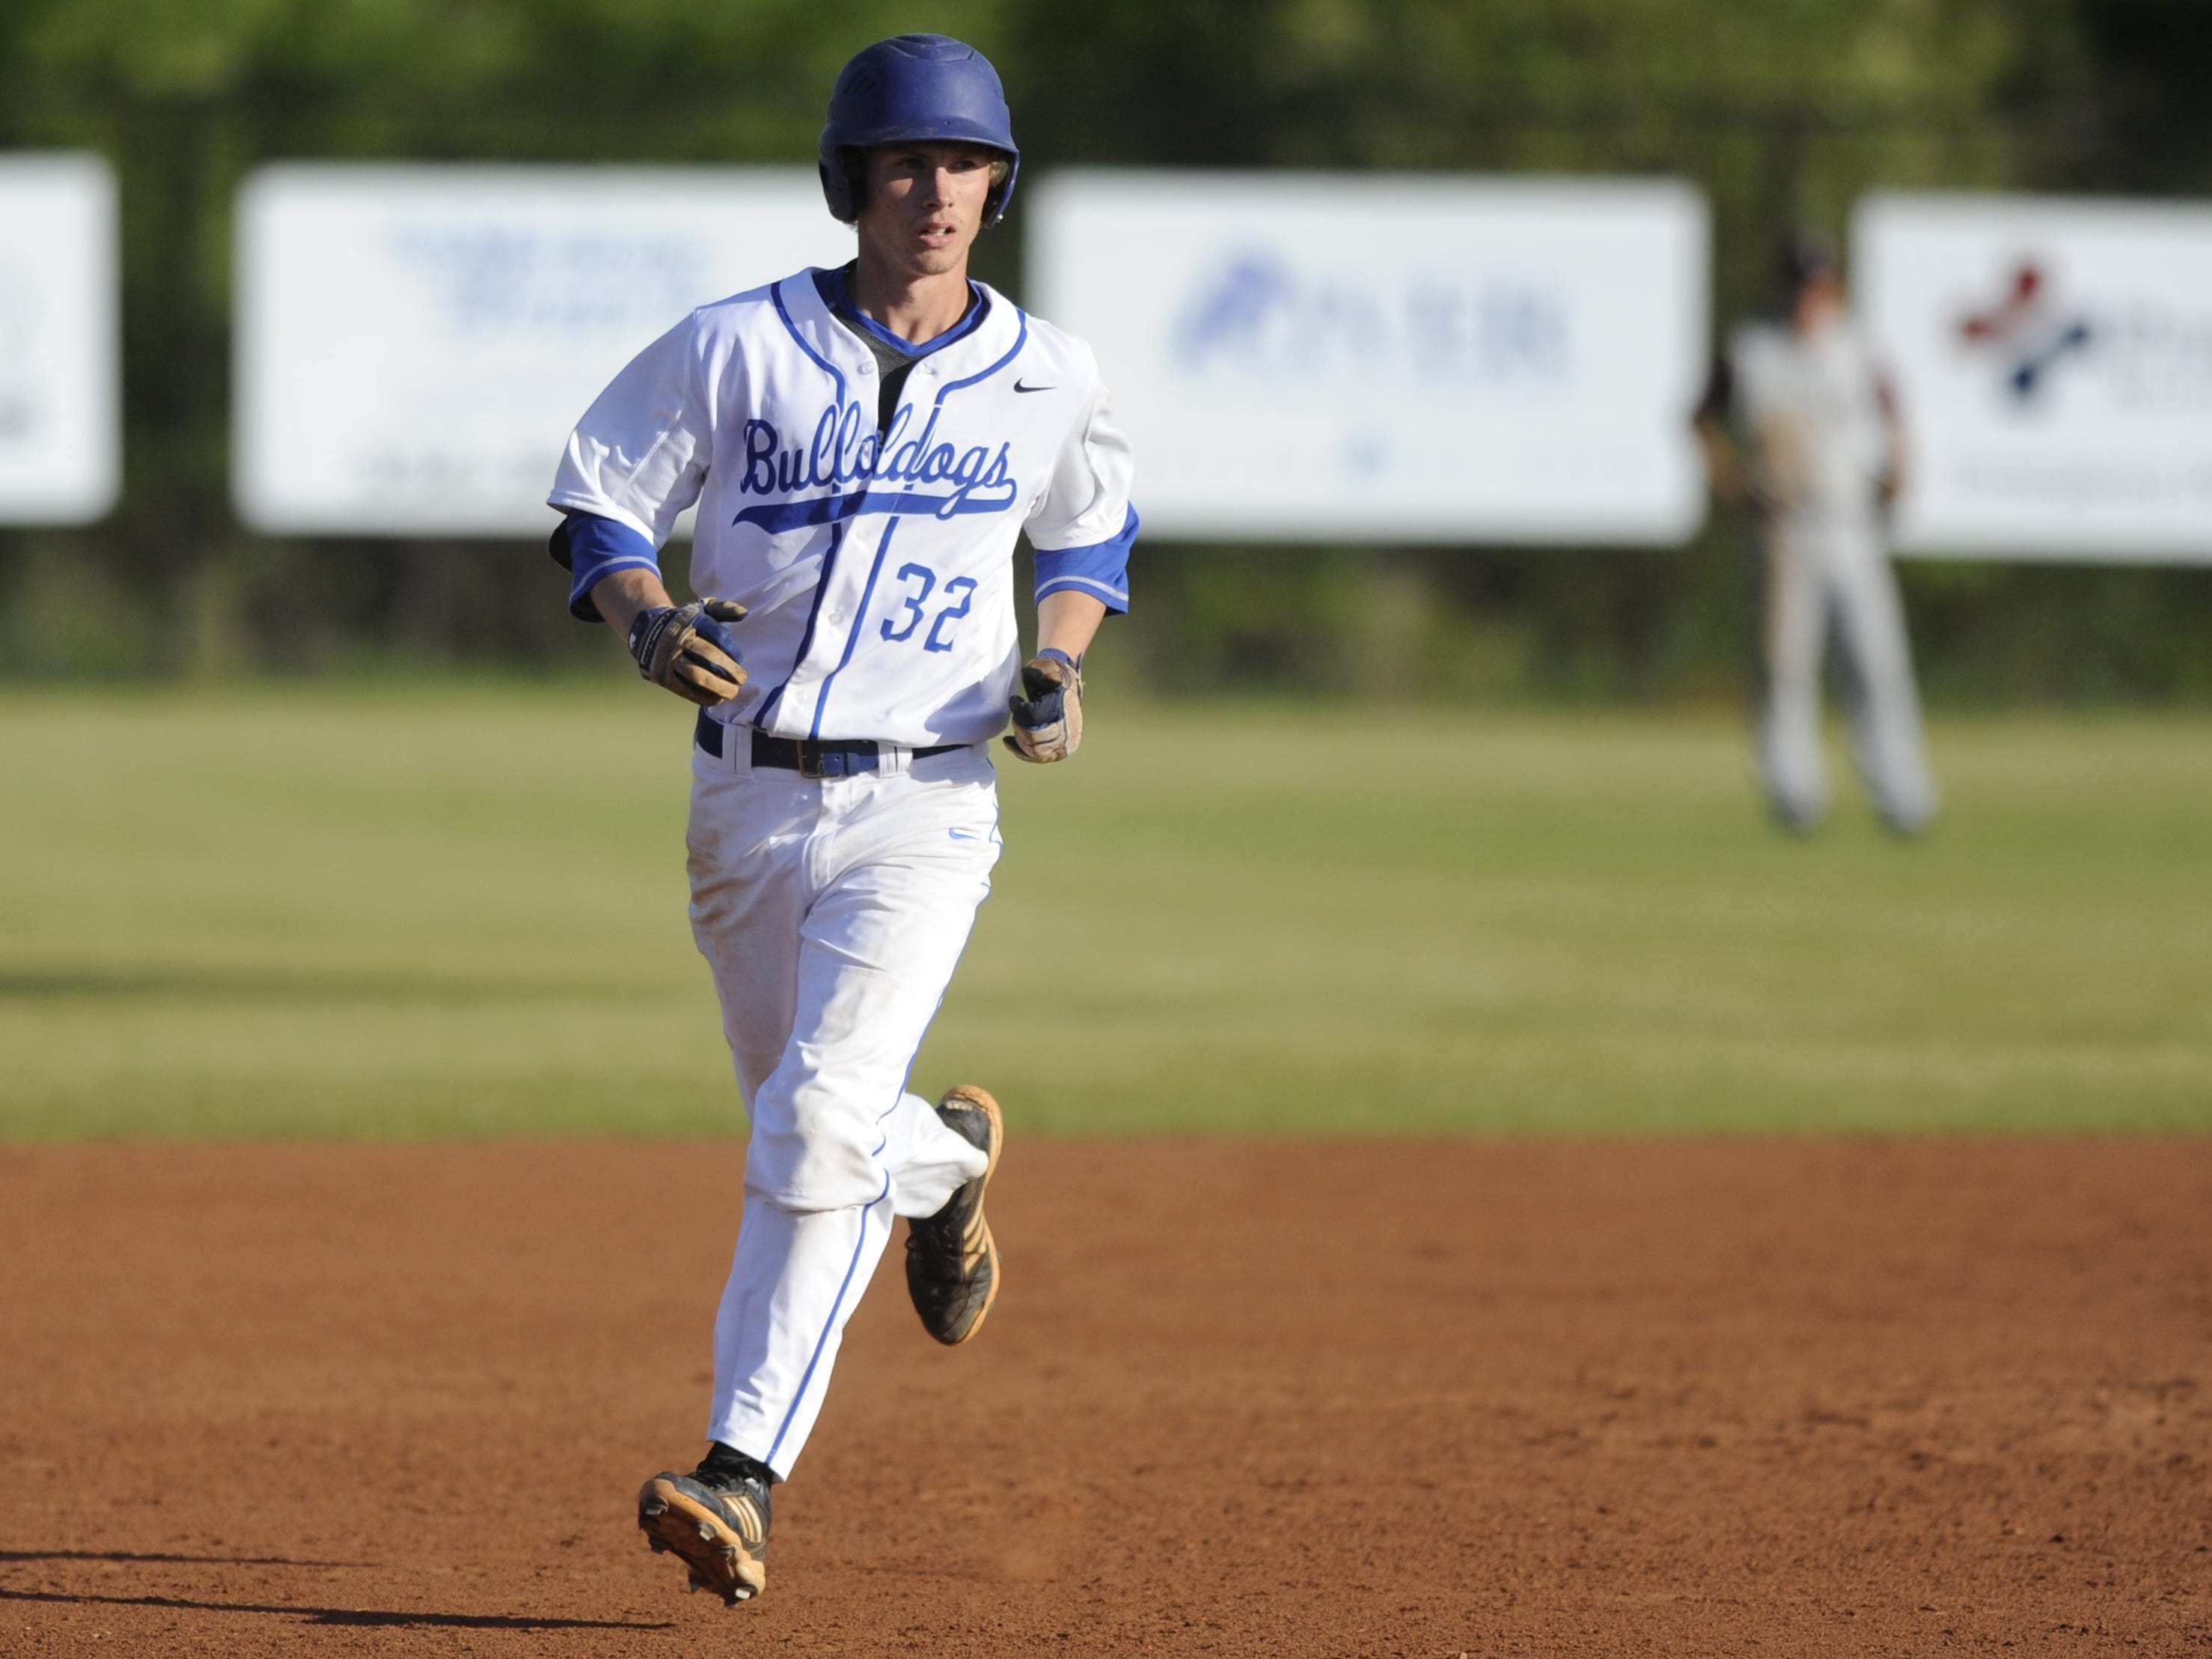 Marbury's Jared Nixon had two home runs and five RBIs to lead the Bulldogs over Brewbaker Tech on Saturday.